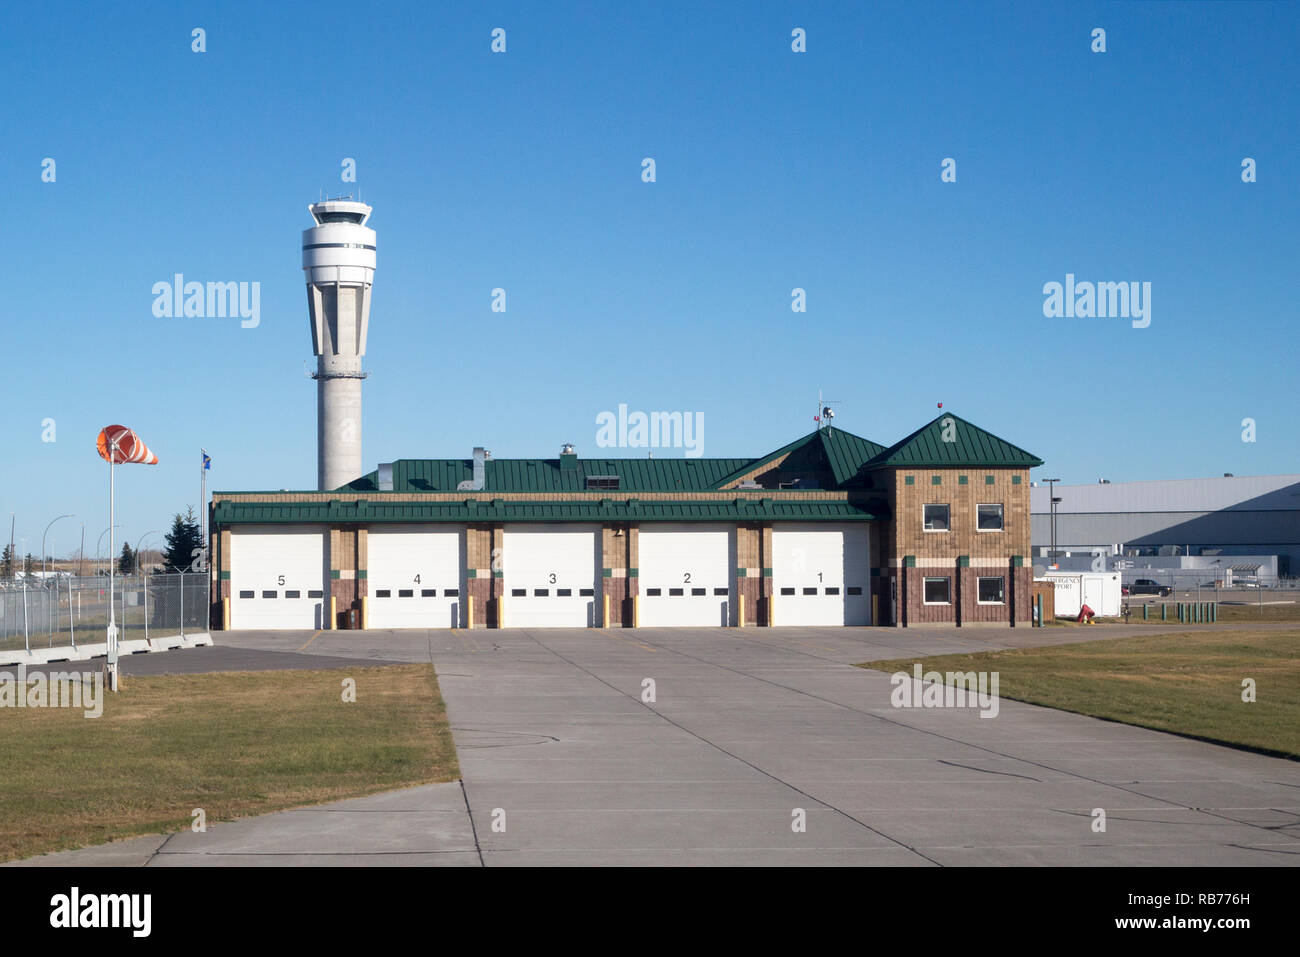 Emergency response services building and control tower at the Calgary International Airport - Stock Image